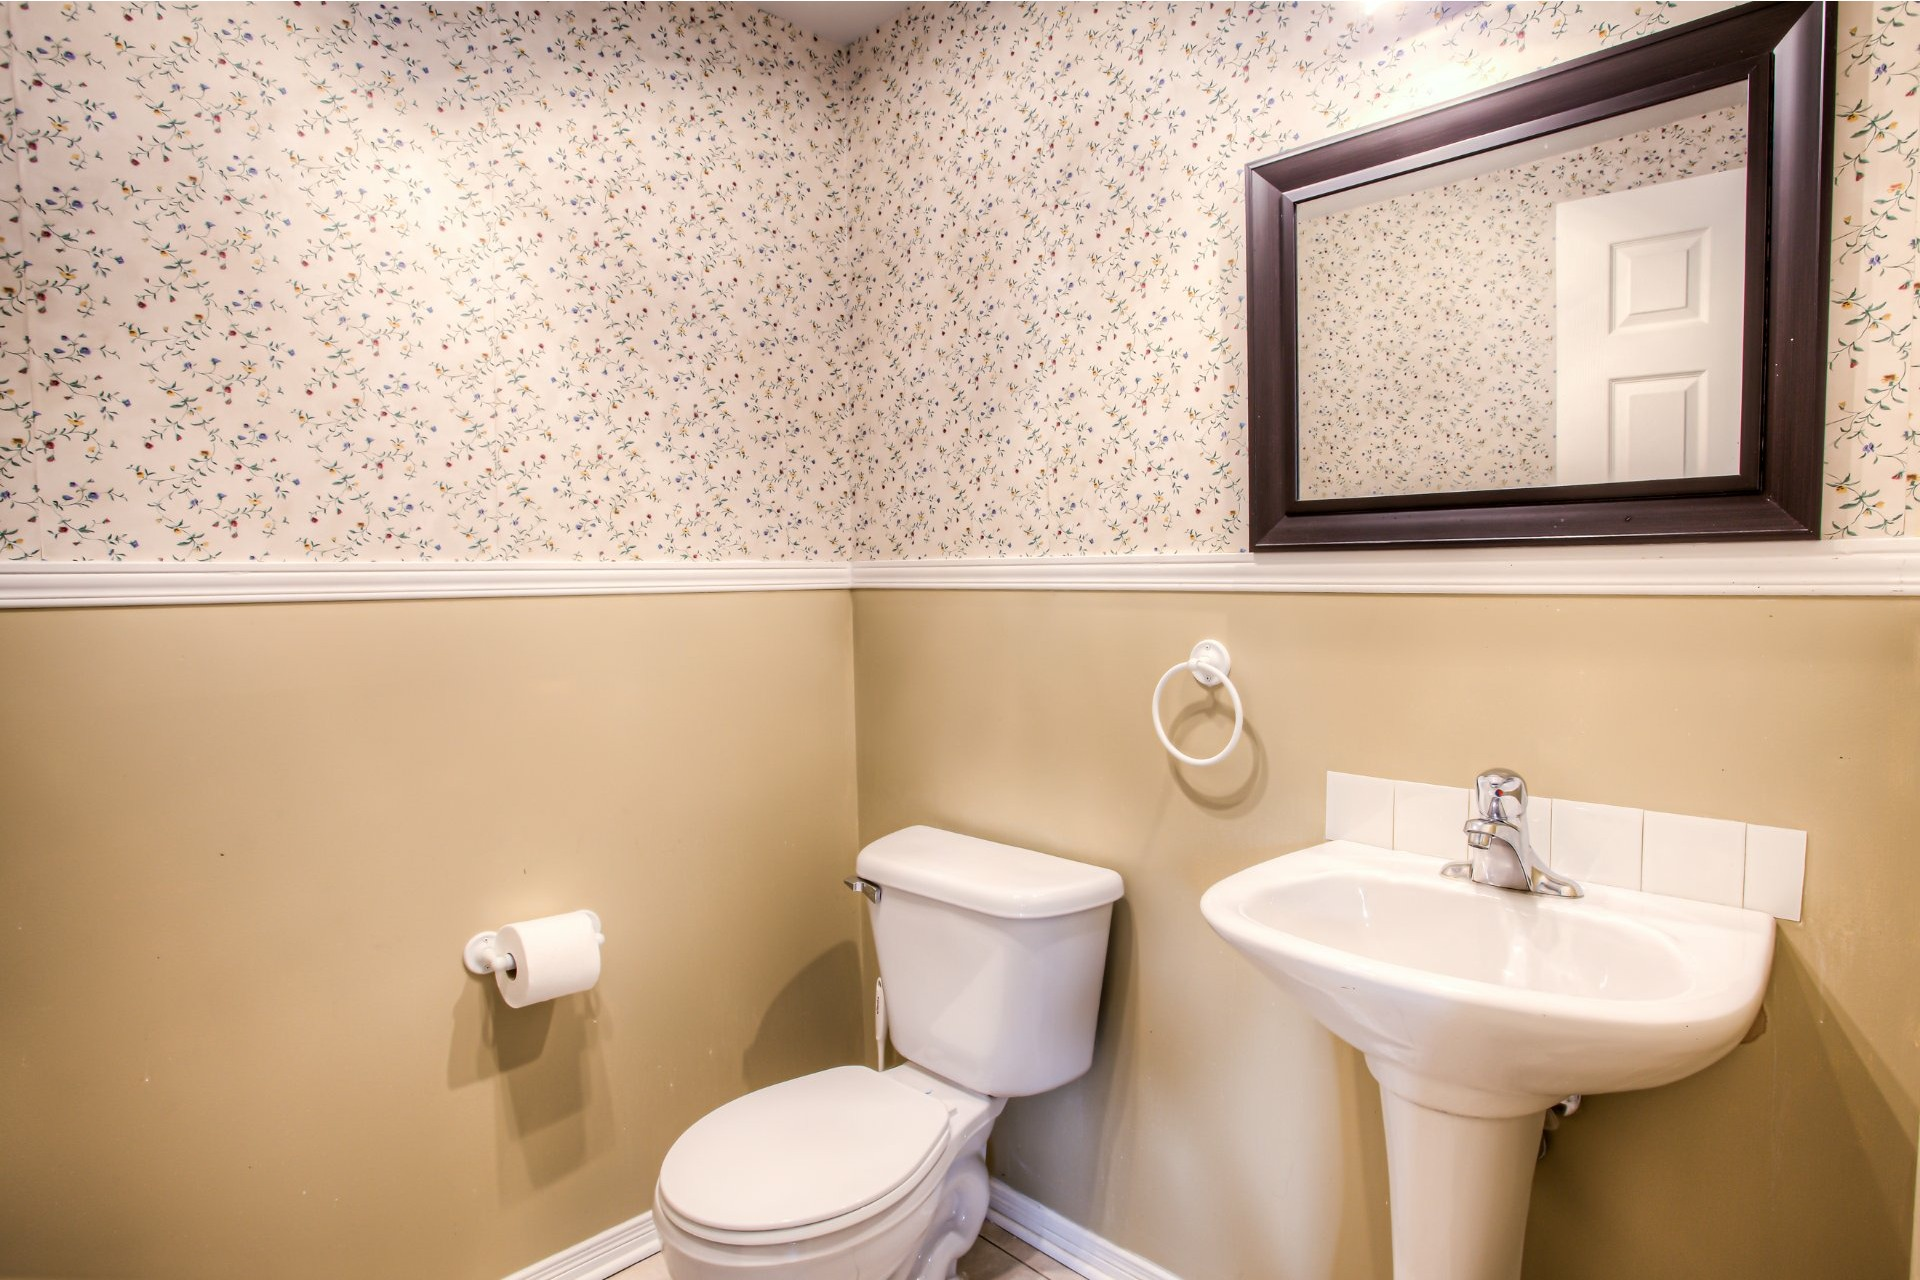 image 20 - House For sale Vaudreuil-Dorion - 7 rooms